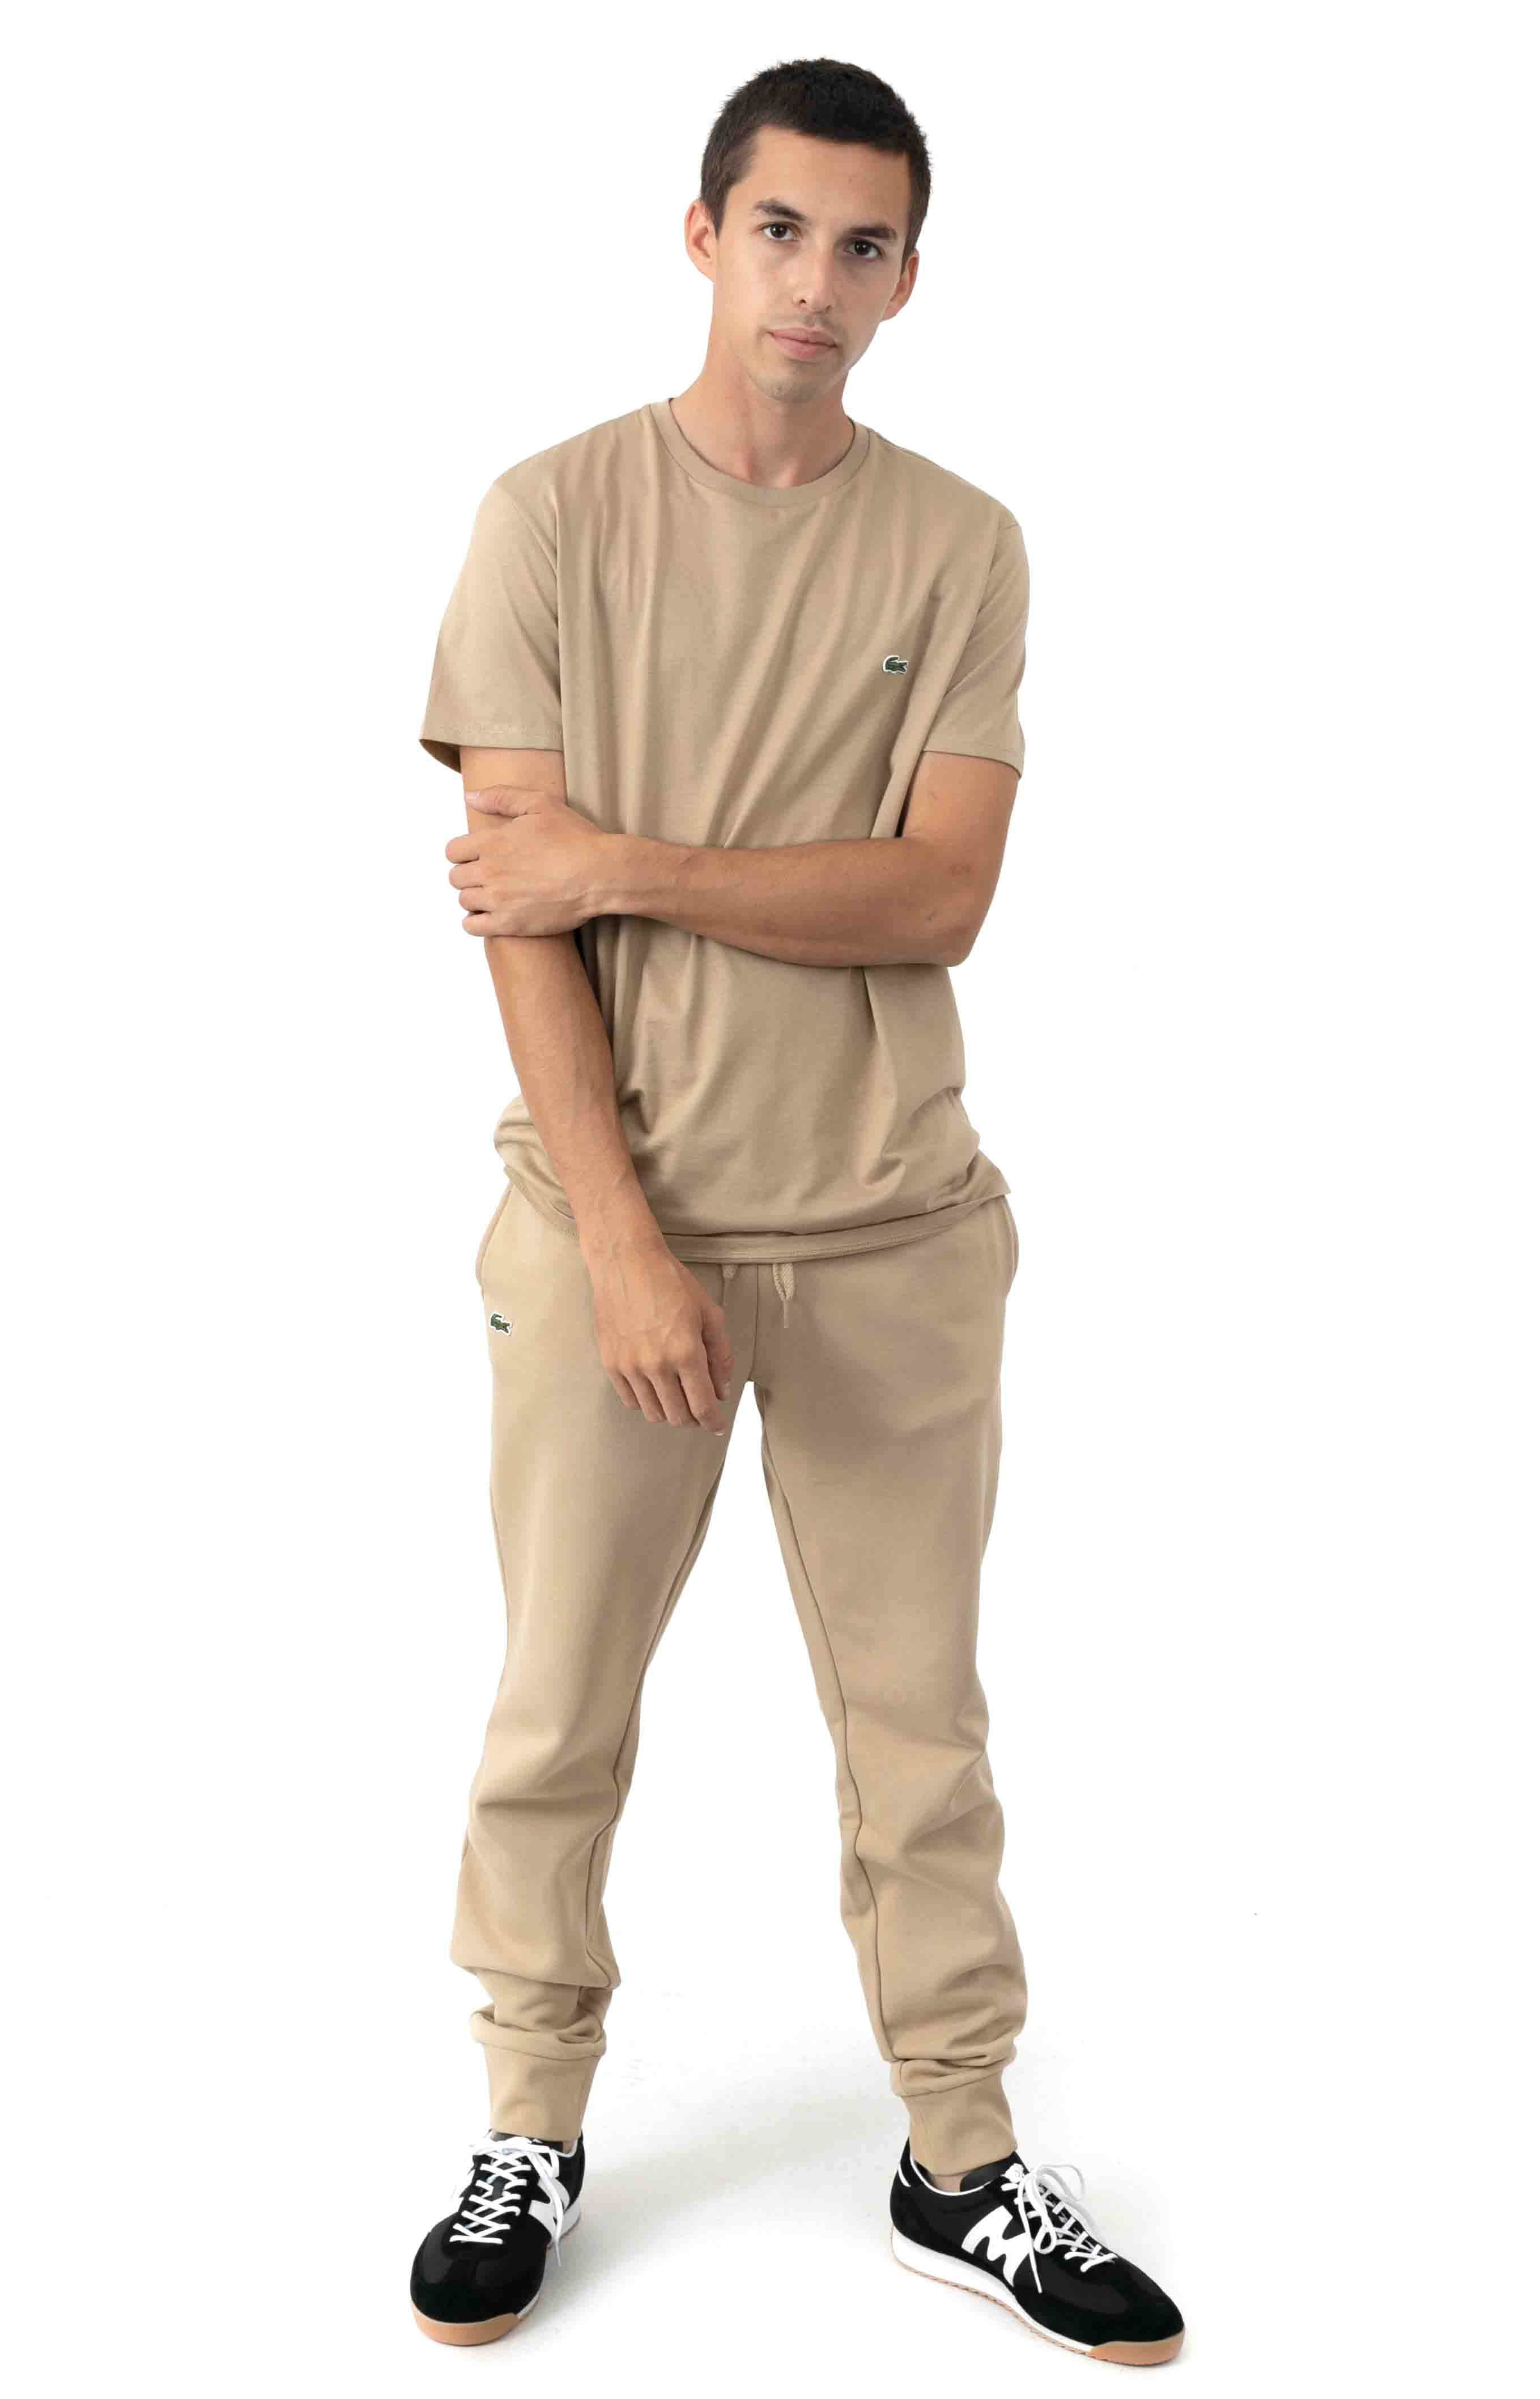 SPORT Fleece Jogging Pants - Beige  4